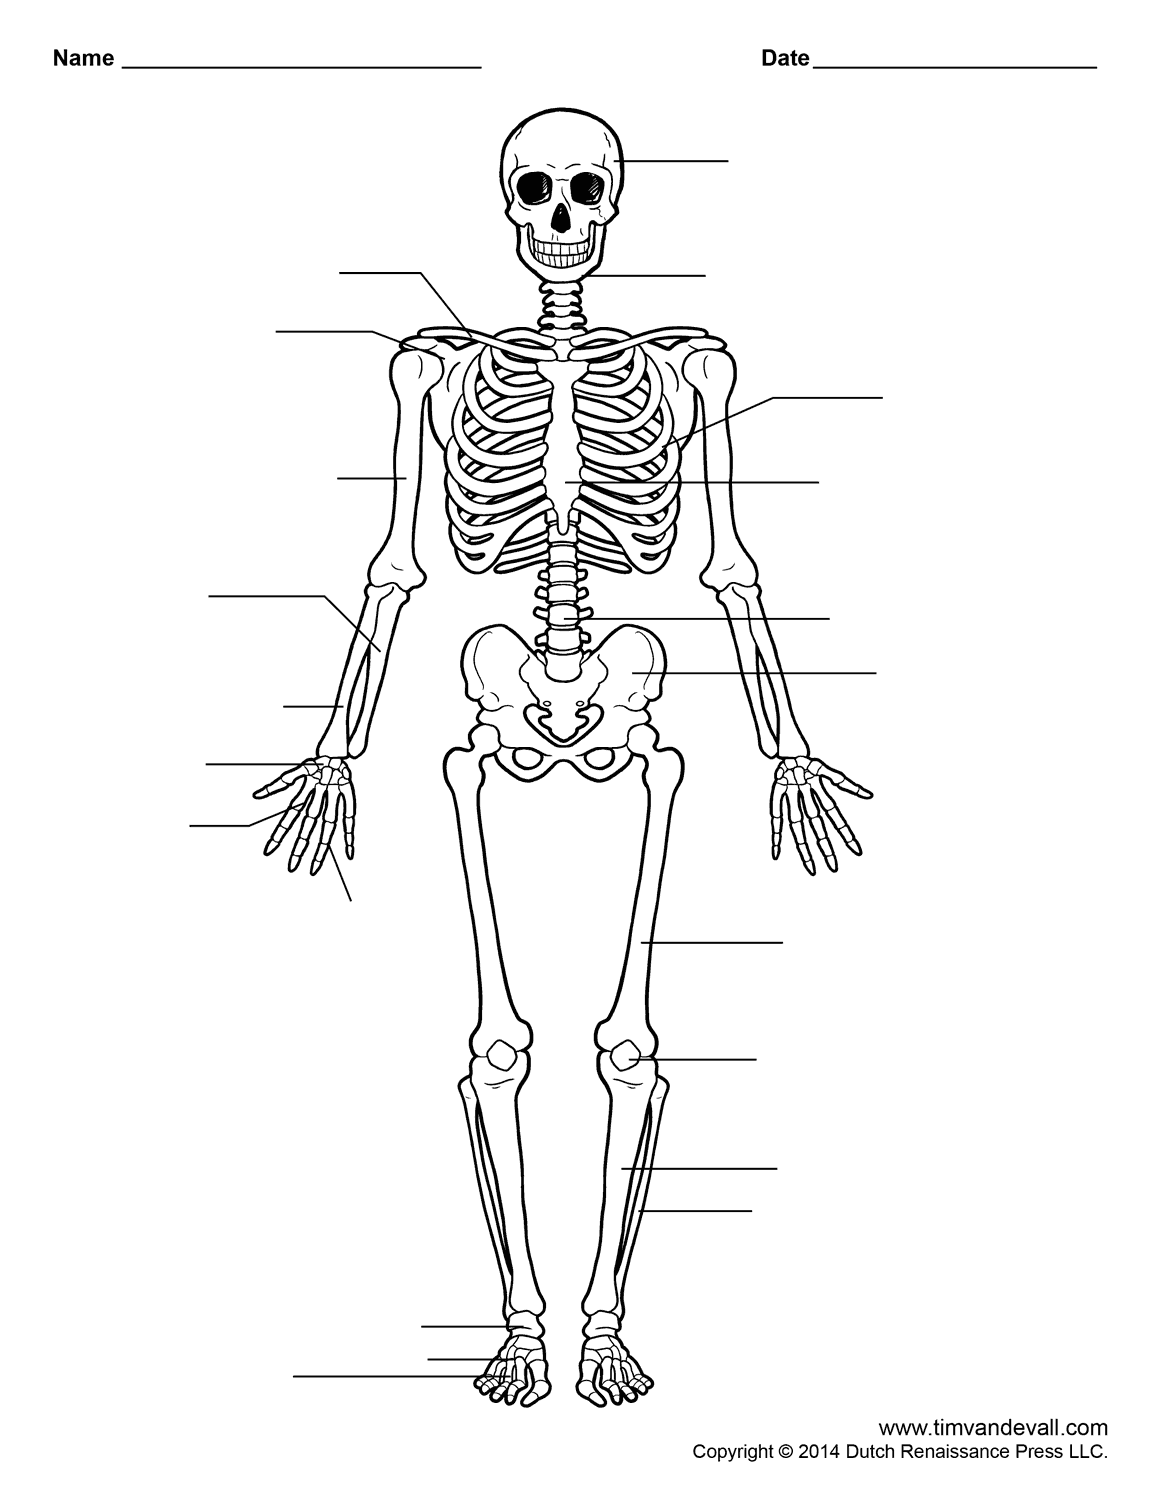 free printable human skeleton worksheet for students and teachers